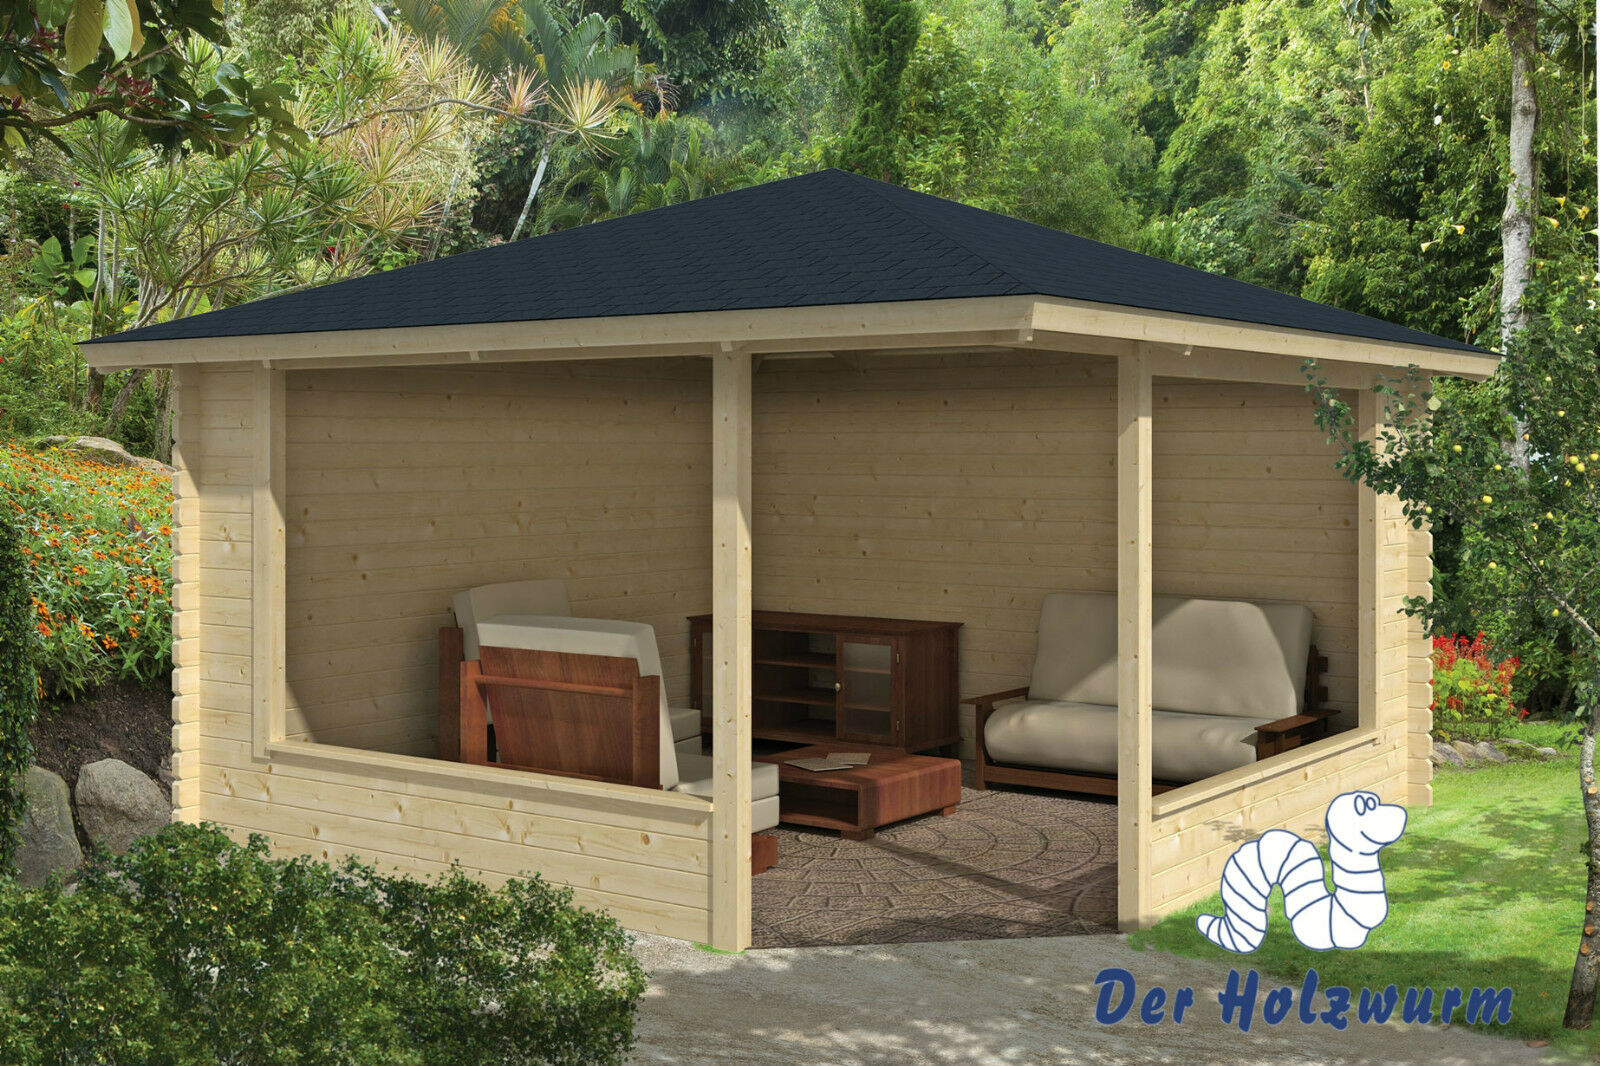 gartenhaus marit blockhaus 400x400 cm holzhaus 45mm pavillon holz neu pavillion ebay. Black Bedroom Furniture Sets. Home Design Ideas